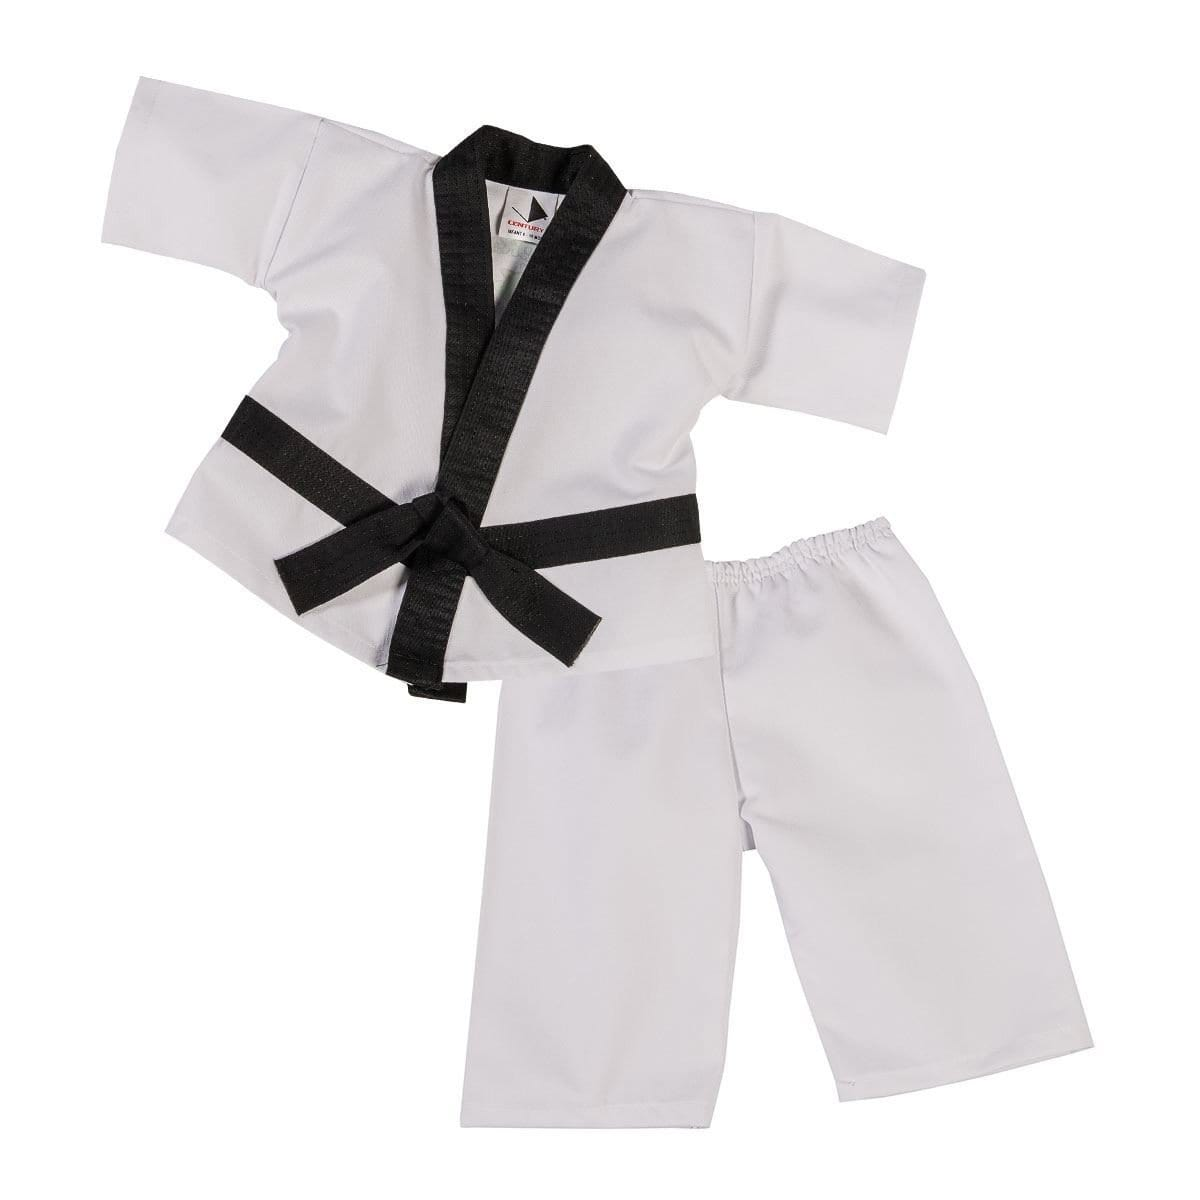 Lil Dragon Infant Uniform  karate martial arts c0411 - BlackBeltShop